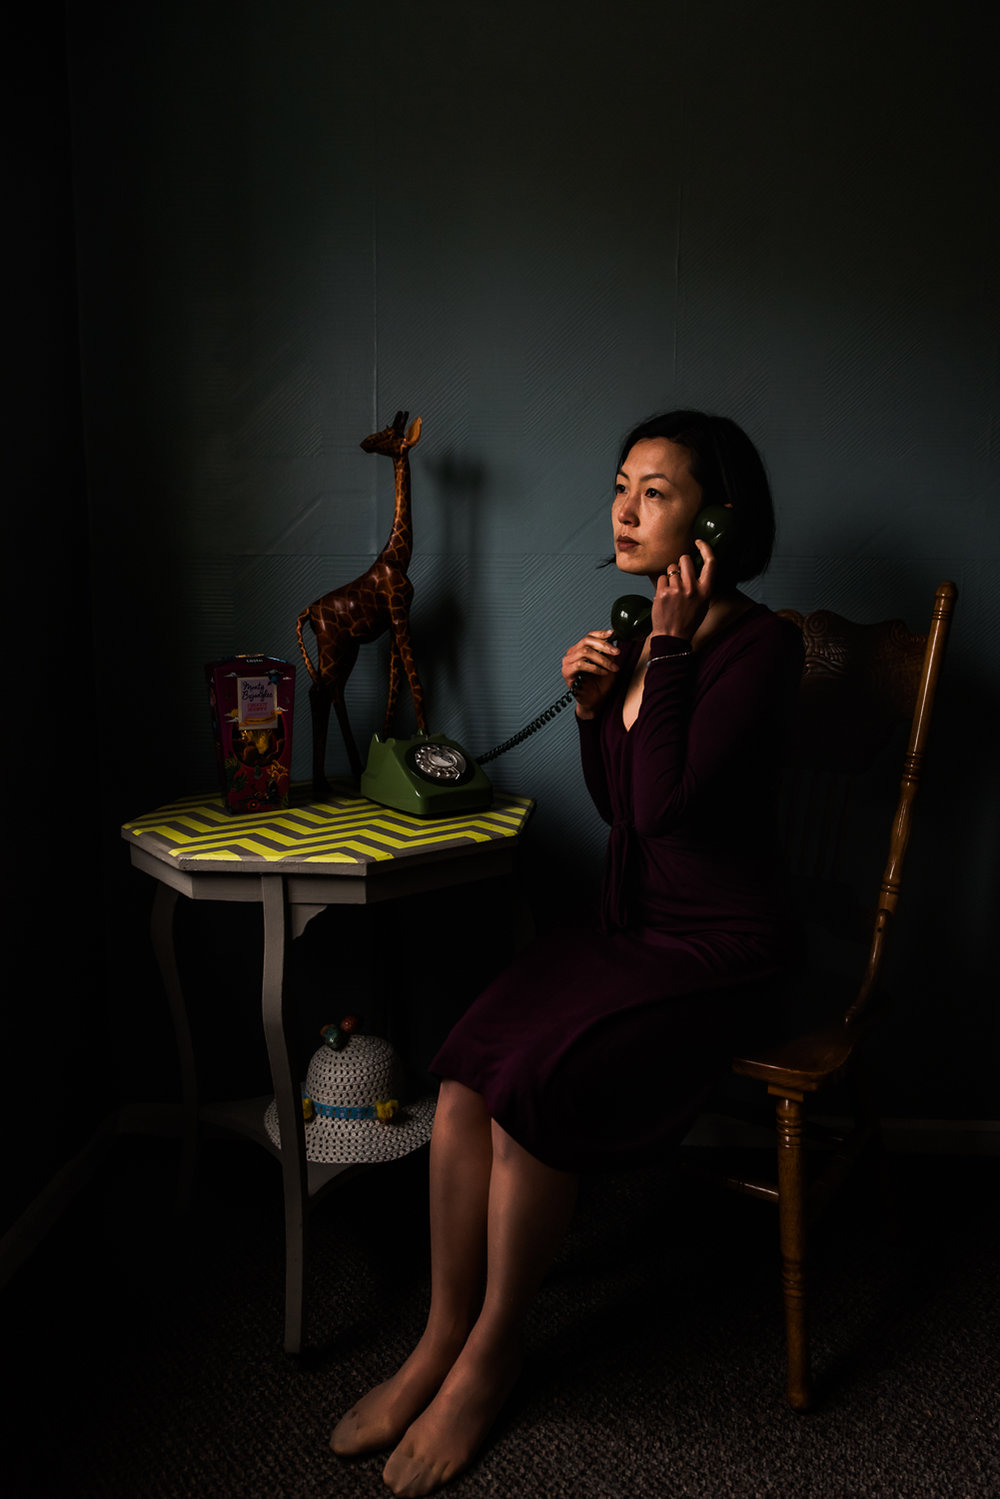 Photographer sits with her telephone in her hands surrounded by